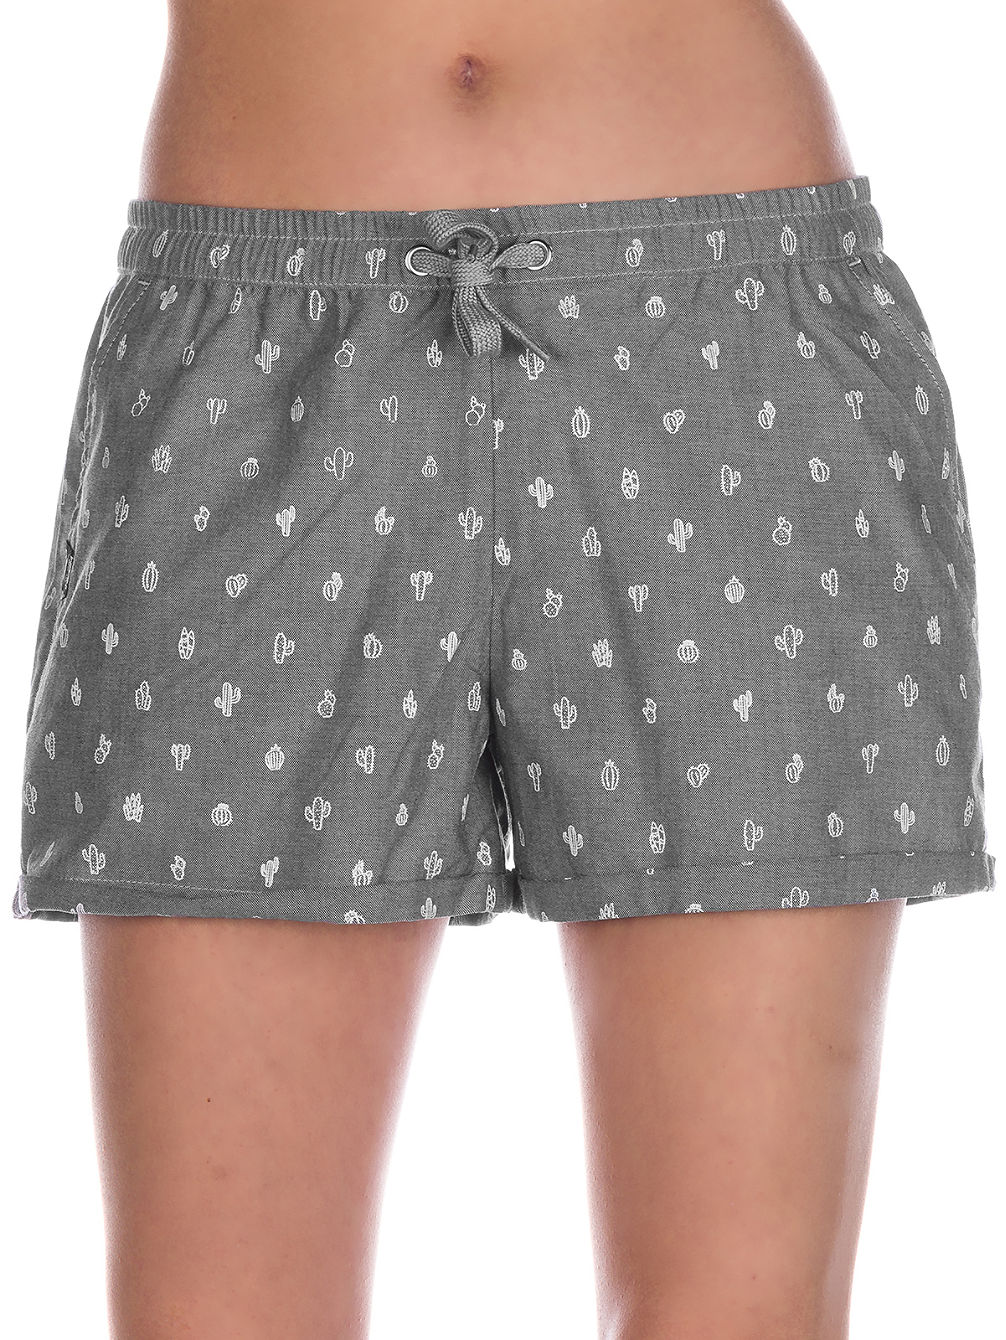 Lil Cactus Shorts